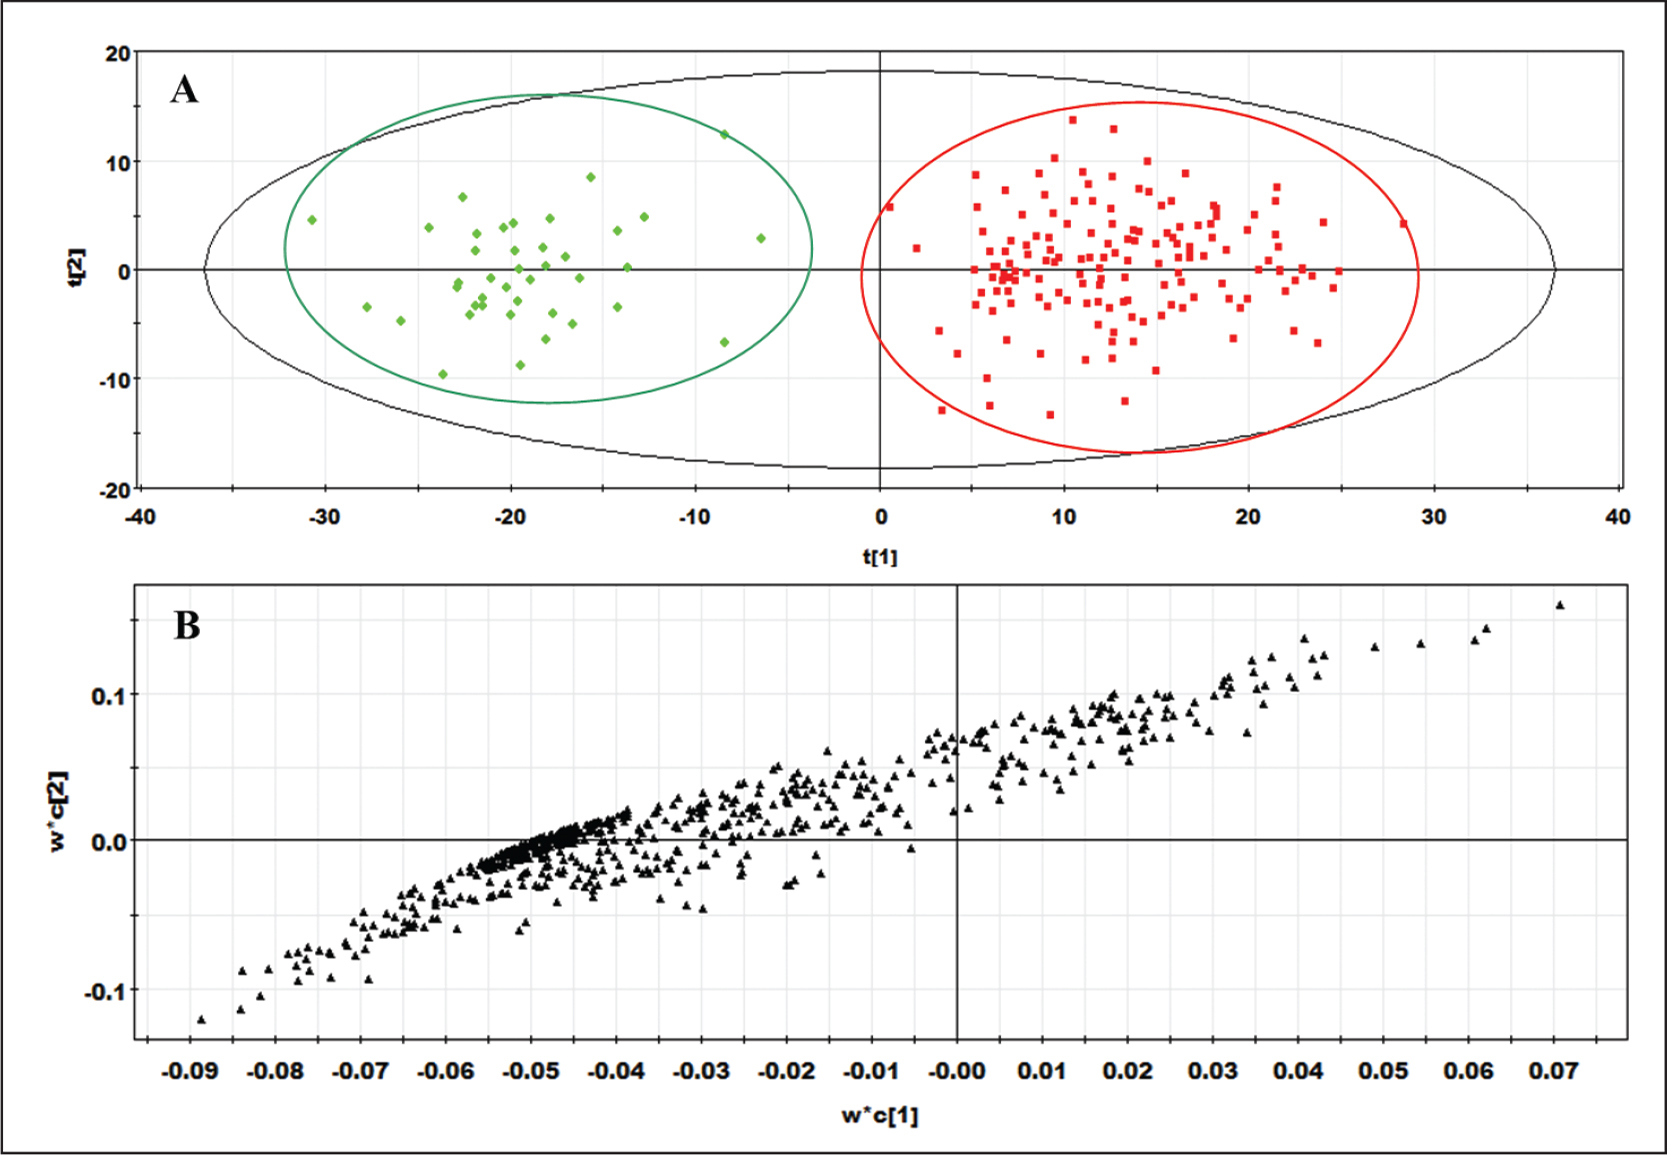 Partial least squares discriminate analysis plot obtained from the four groups (NW = no wearing of soft contact lenses; 5W = less than 5 years of wearing soft contact lenses; 5–10W = 5 to 10 years of wearing soft contact lenses; O10W = more than 10 years of wearing soft contact lenses). A represents the score plot (red square represents the soft contact lens wearing group sample and green square represents the NW group sample) and B represents the loading plot.